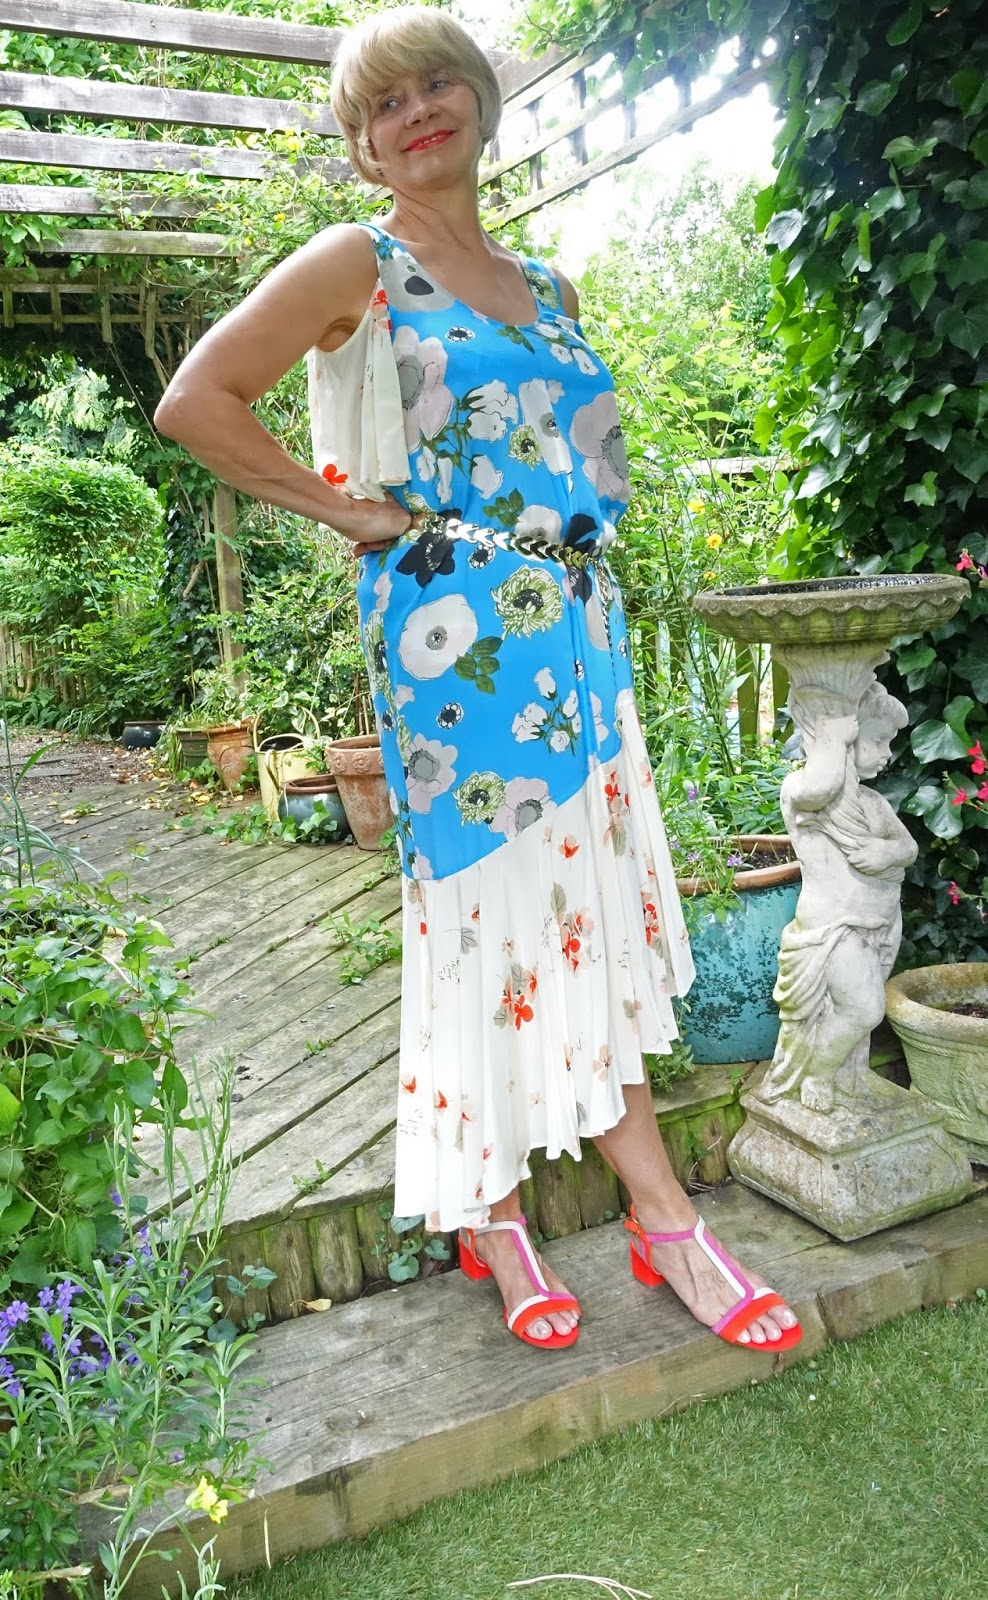 The new look for summer dresses is unstructured, flowing and midi length with contrasting patterns or unsugary florals. Is This Mutton? looks at this trend for the fashionable over-40 woman